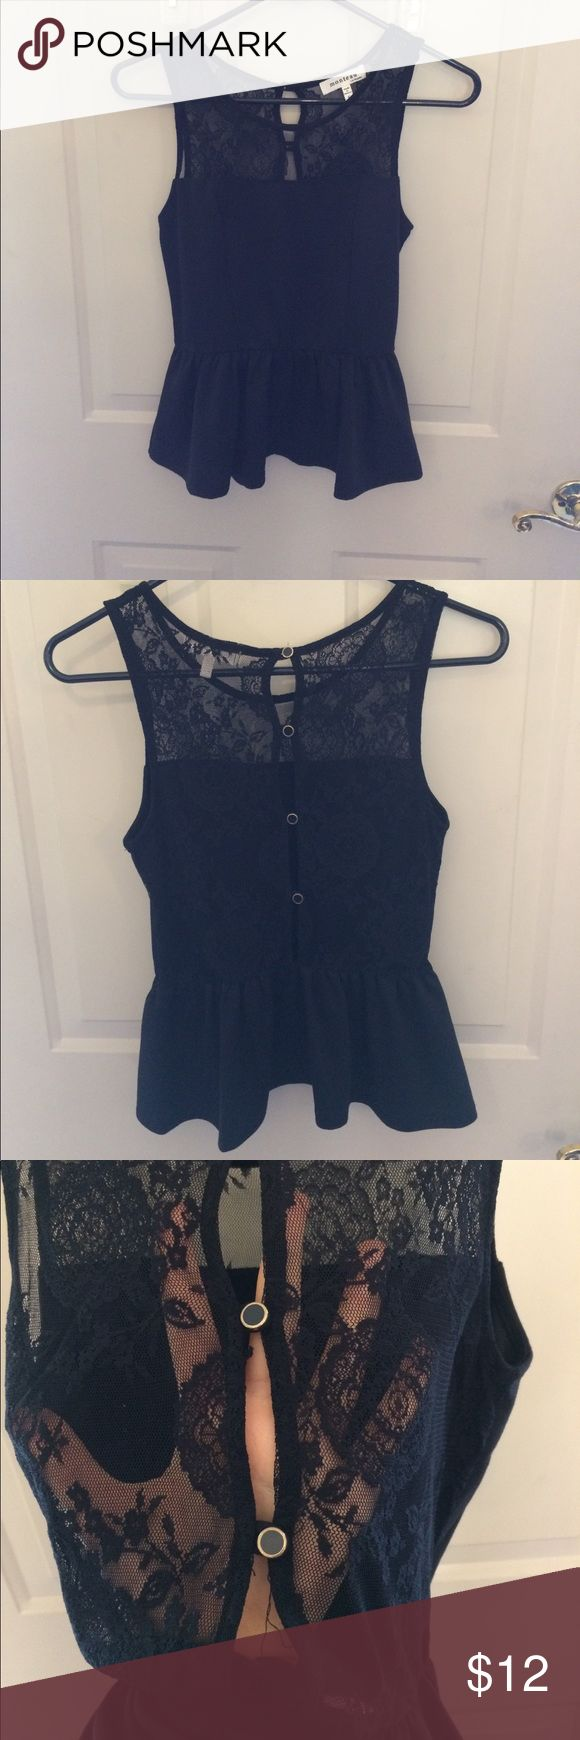 Black lace peplum top Gorgeous black peplum top with full lace back and button up detail. Absolutely stunning! Monteau Tops Tank Tops